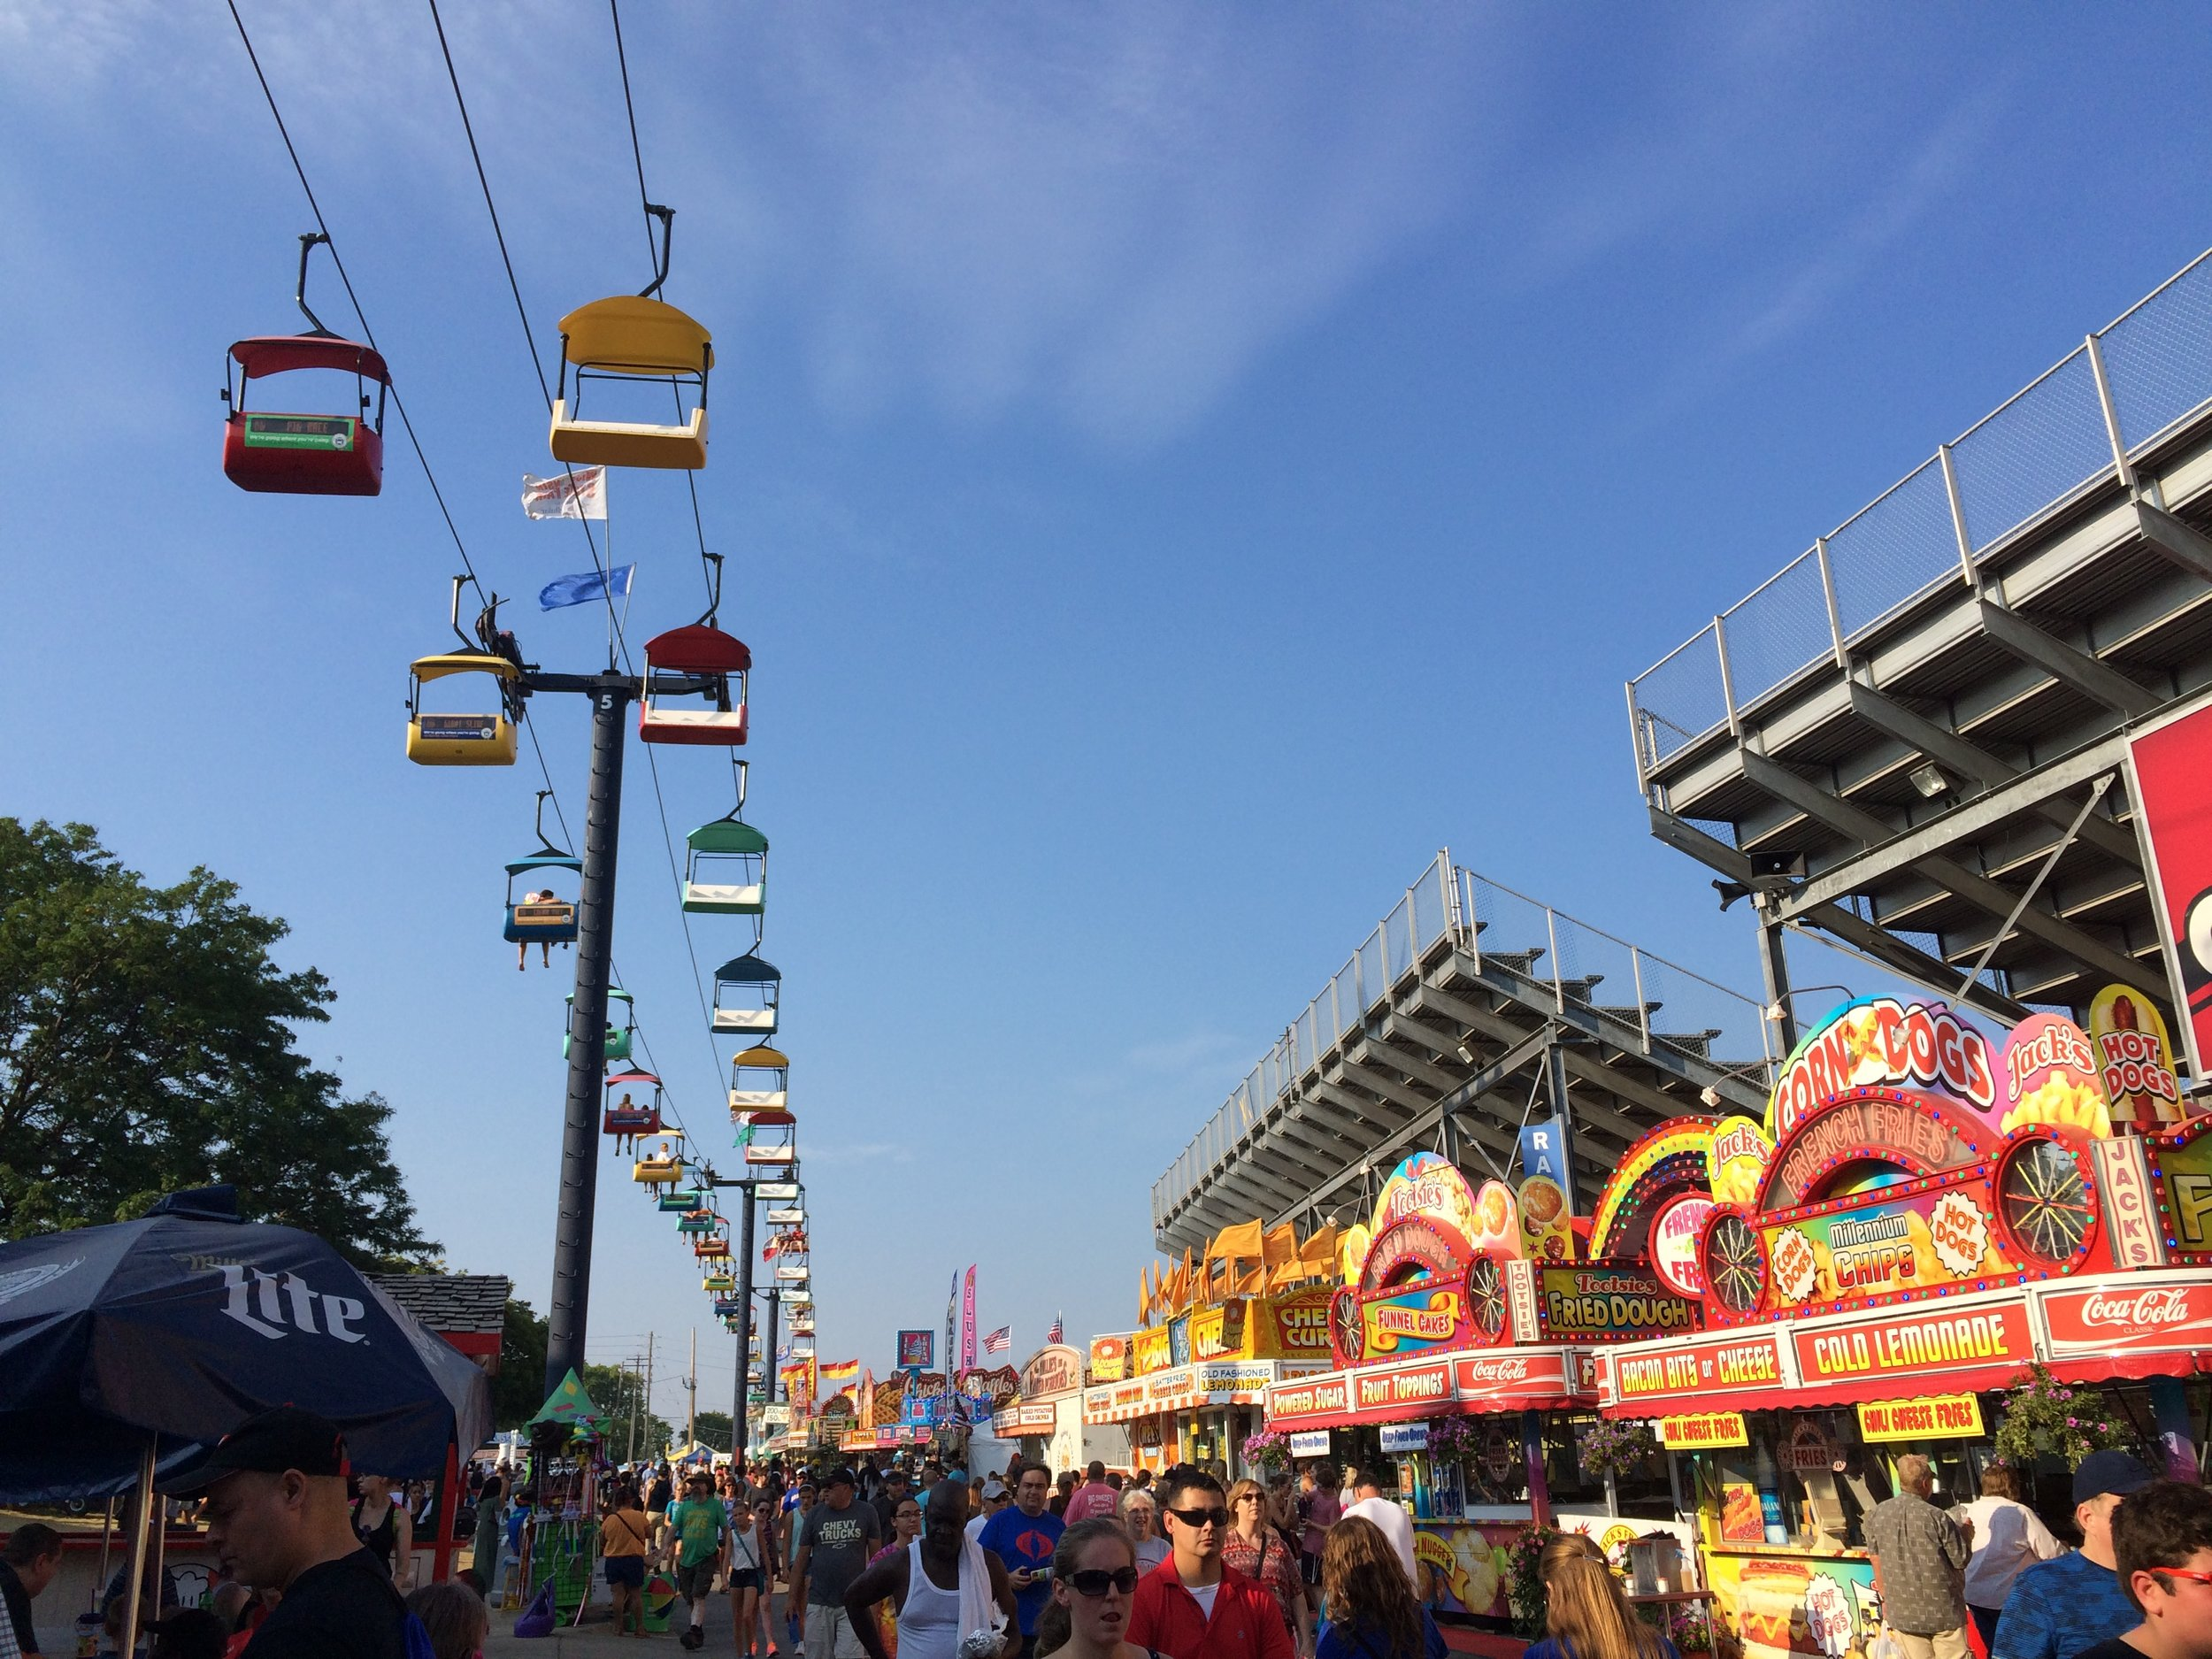 Image courtesy of the Wisconsin State Fair